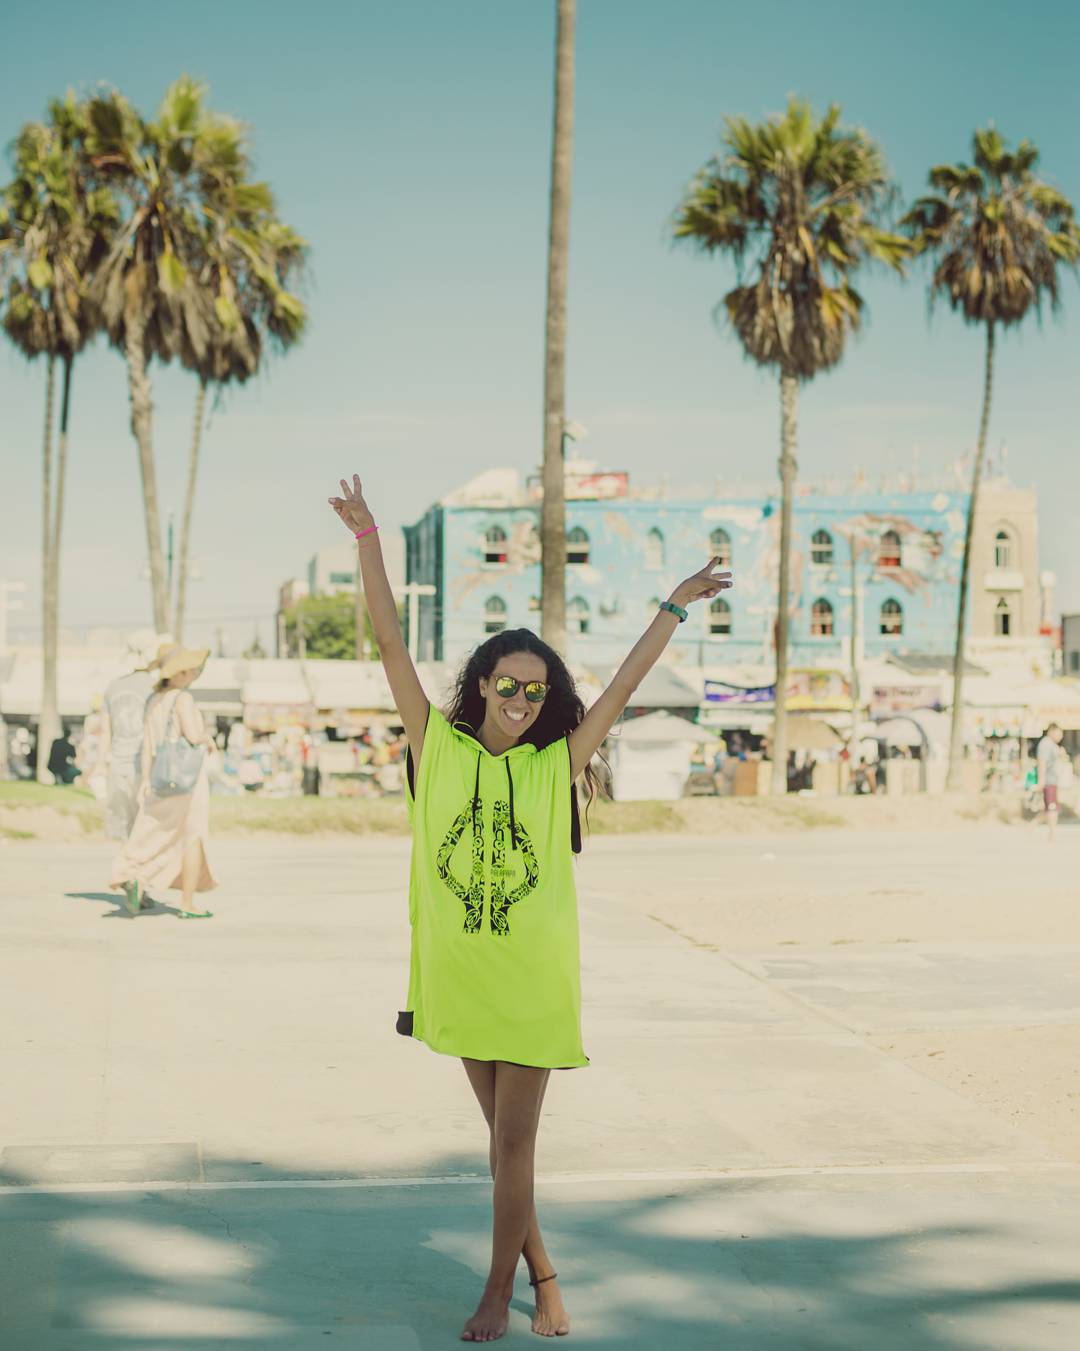 Our fashion stylist @mervc87 representing in Venice beach